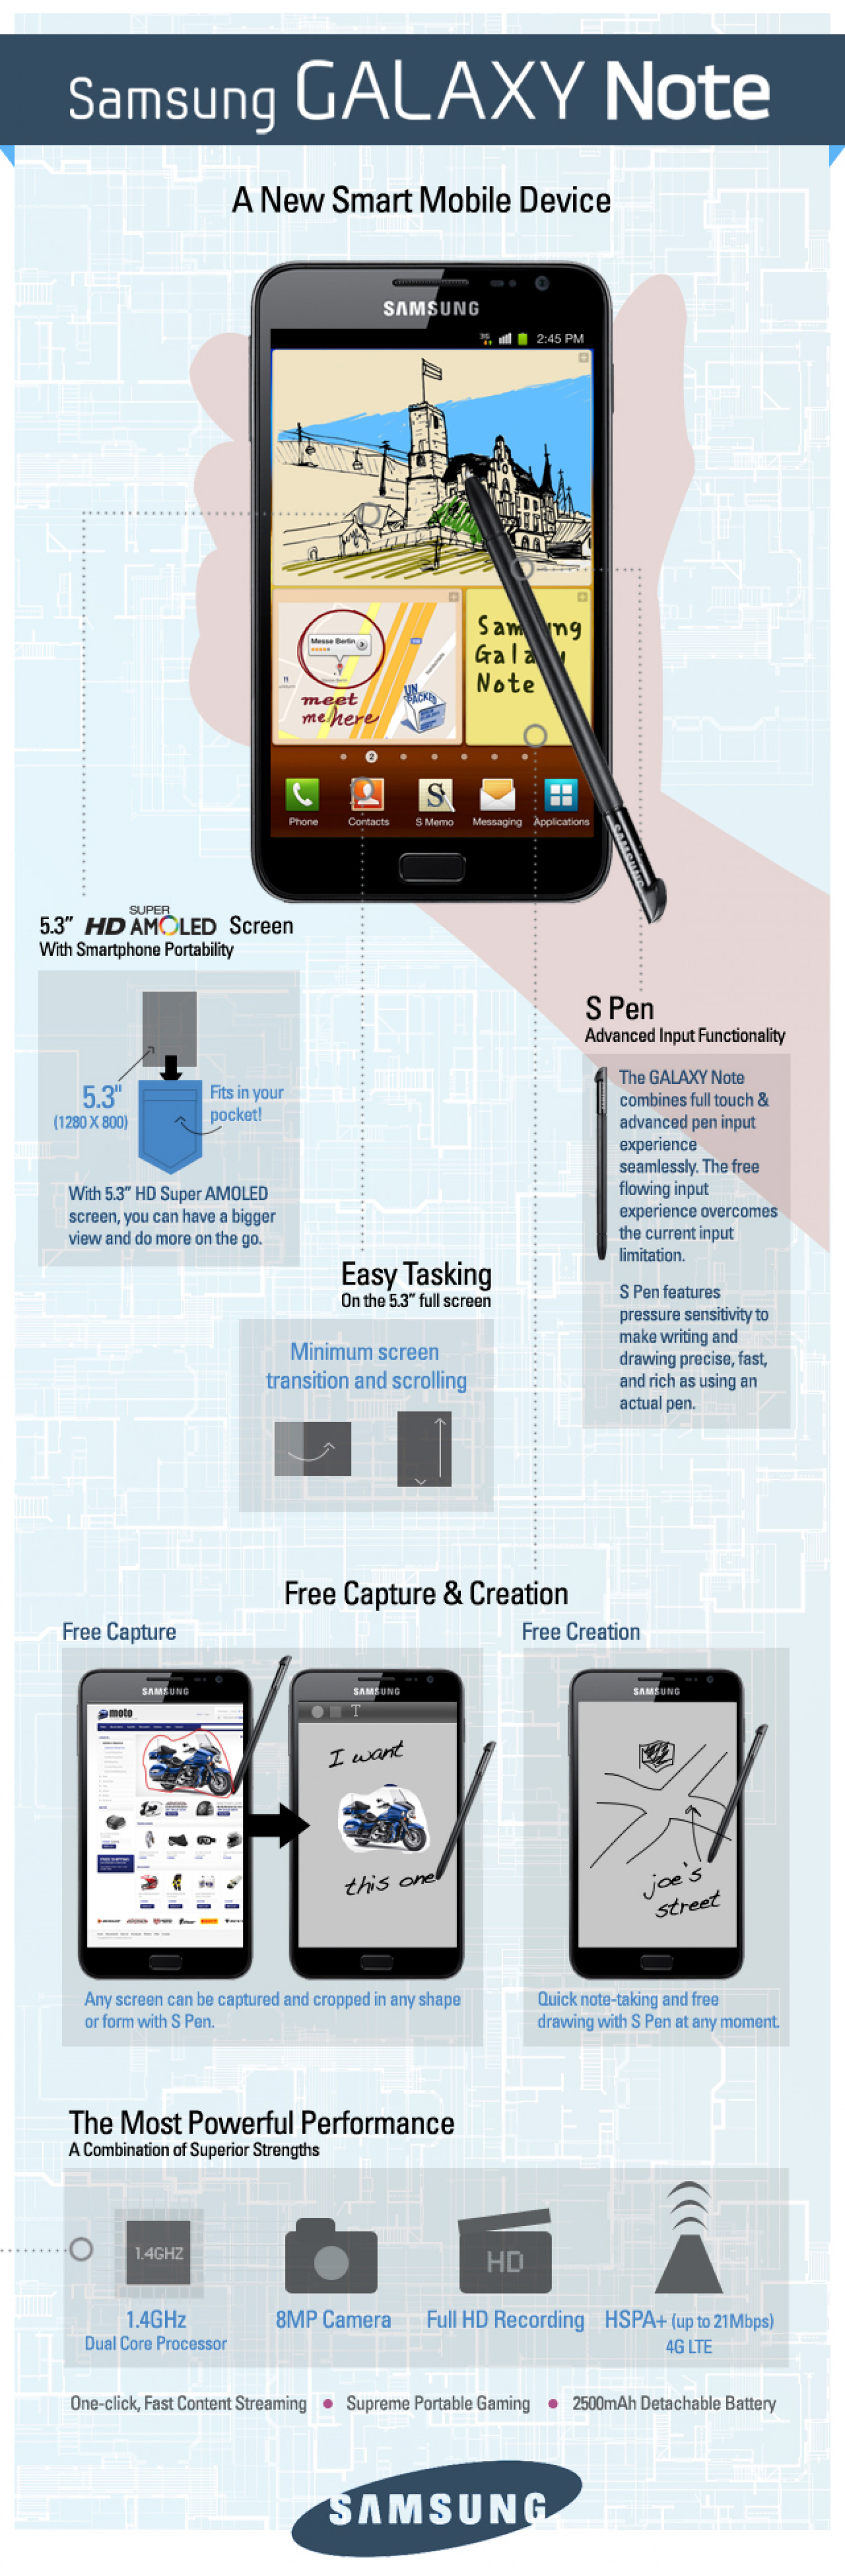 Samsung Galaxy Note Smartphone Features Infographic